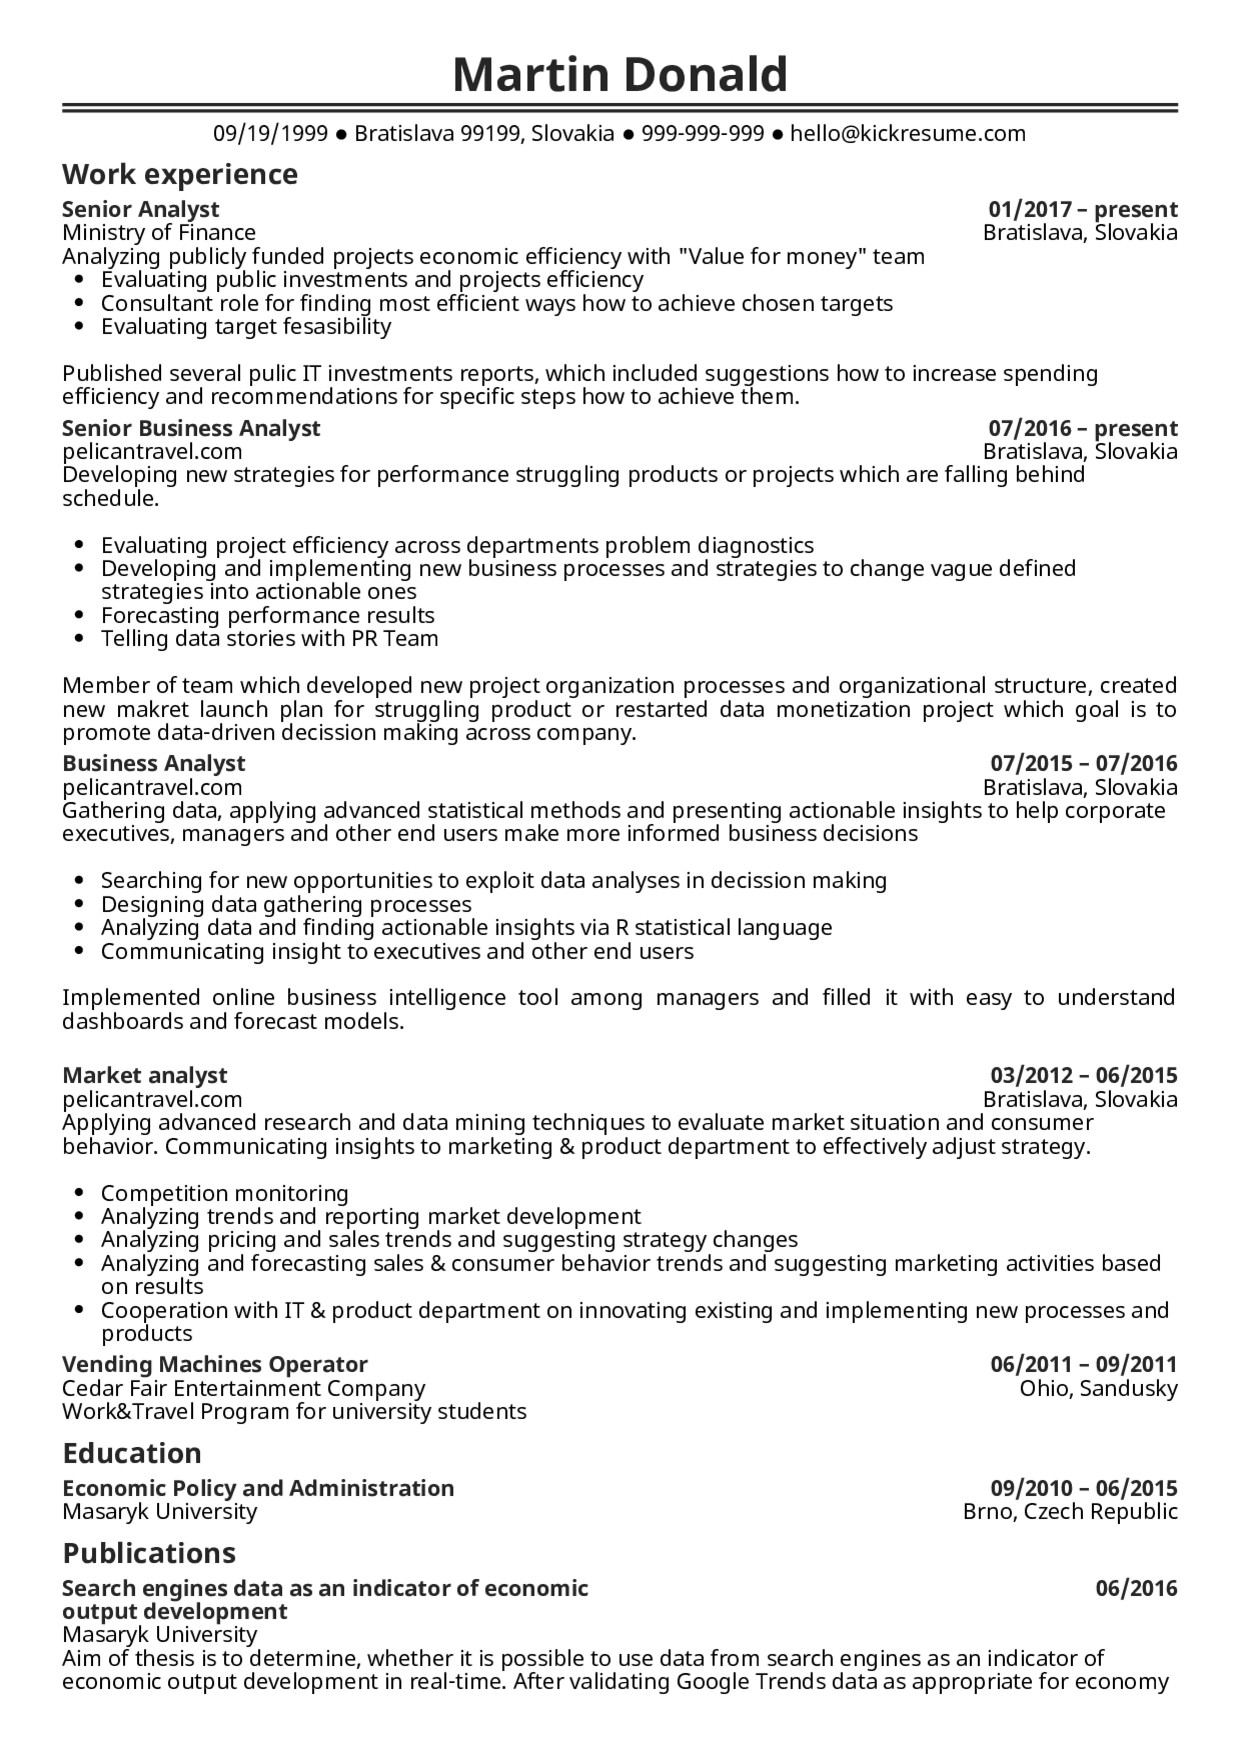 Senior Business Analyst Resume Resume Examples by Real People Senior Business Analyst